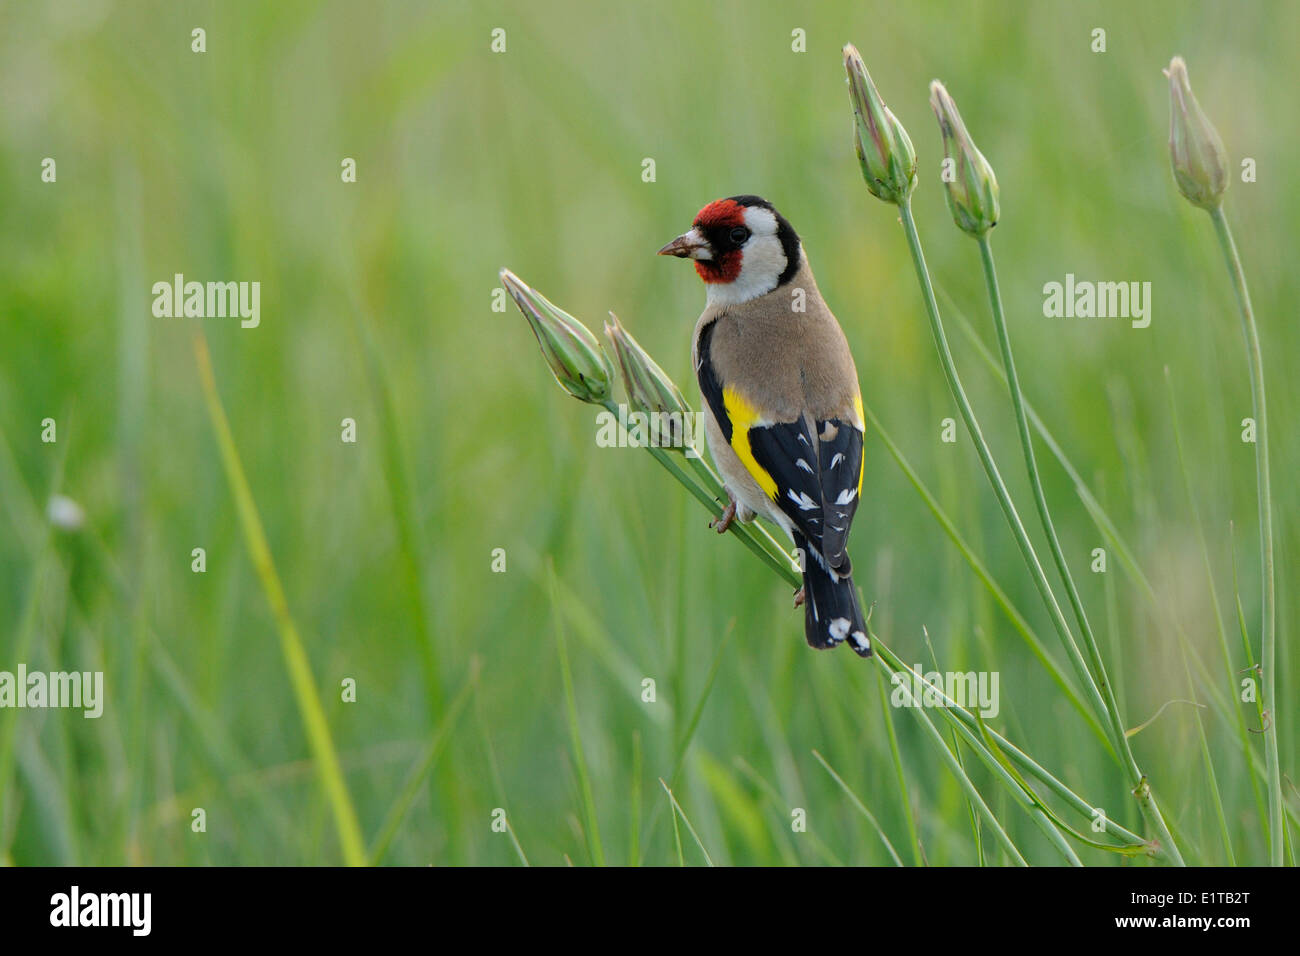 European Goldfinch foraging, backside view - Stock Image